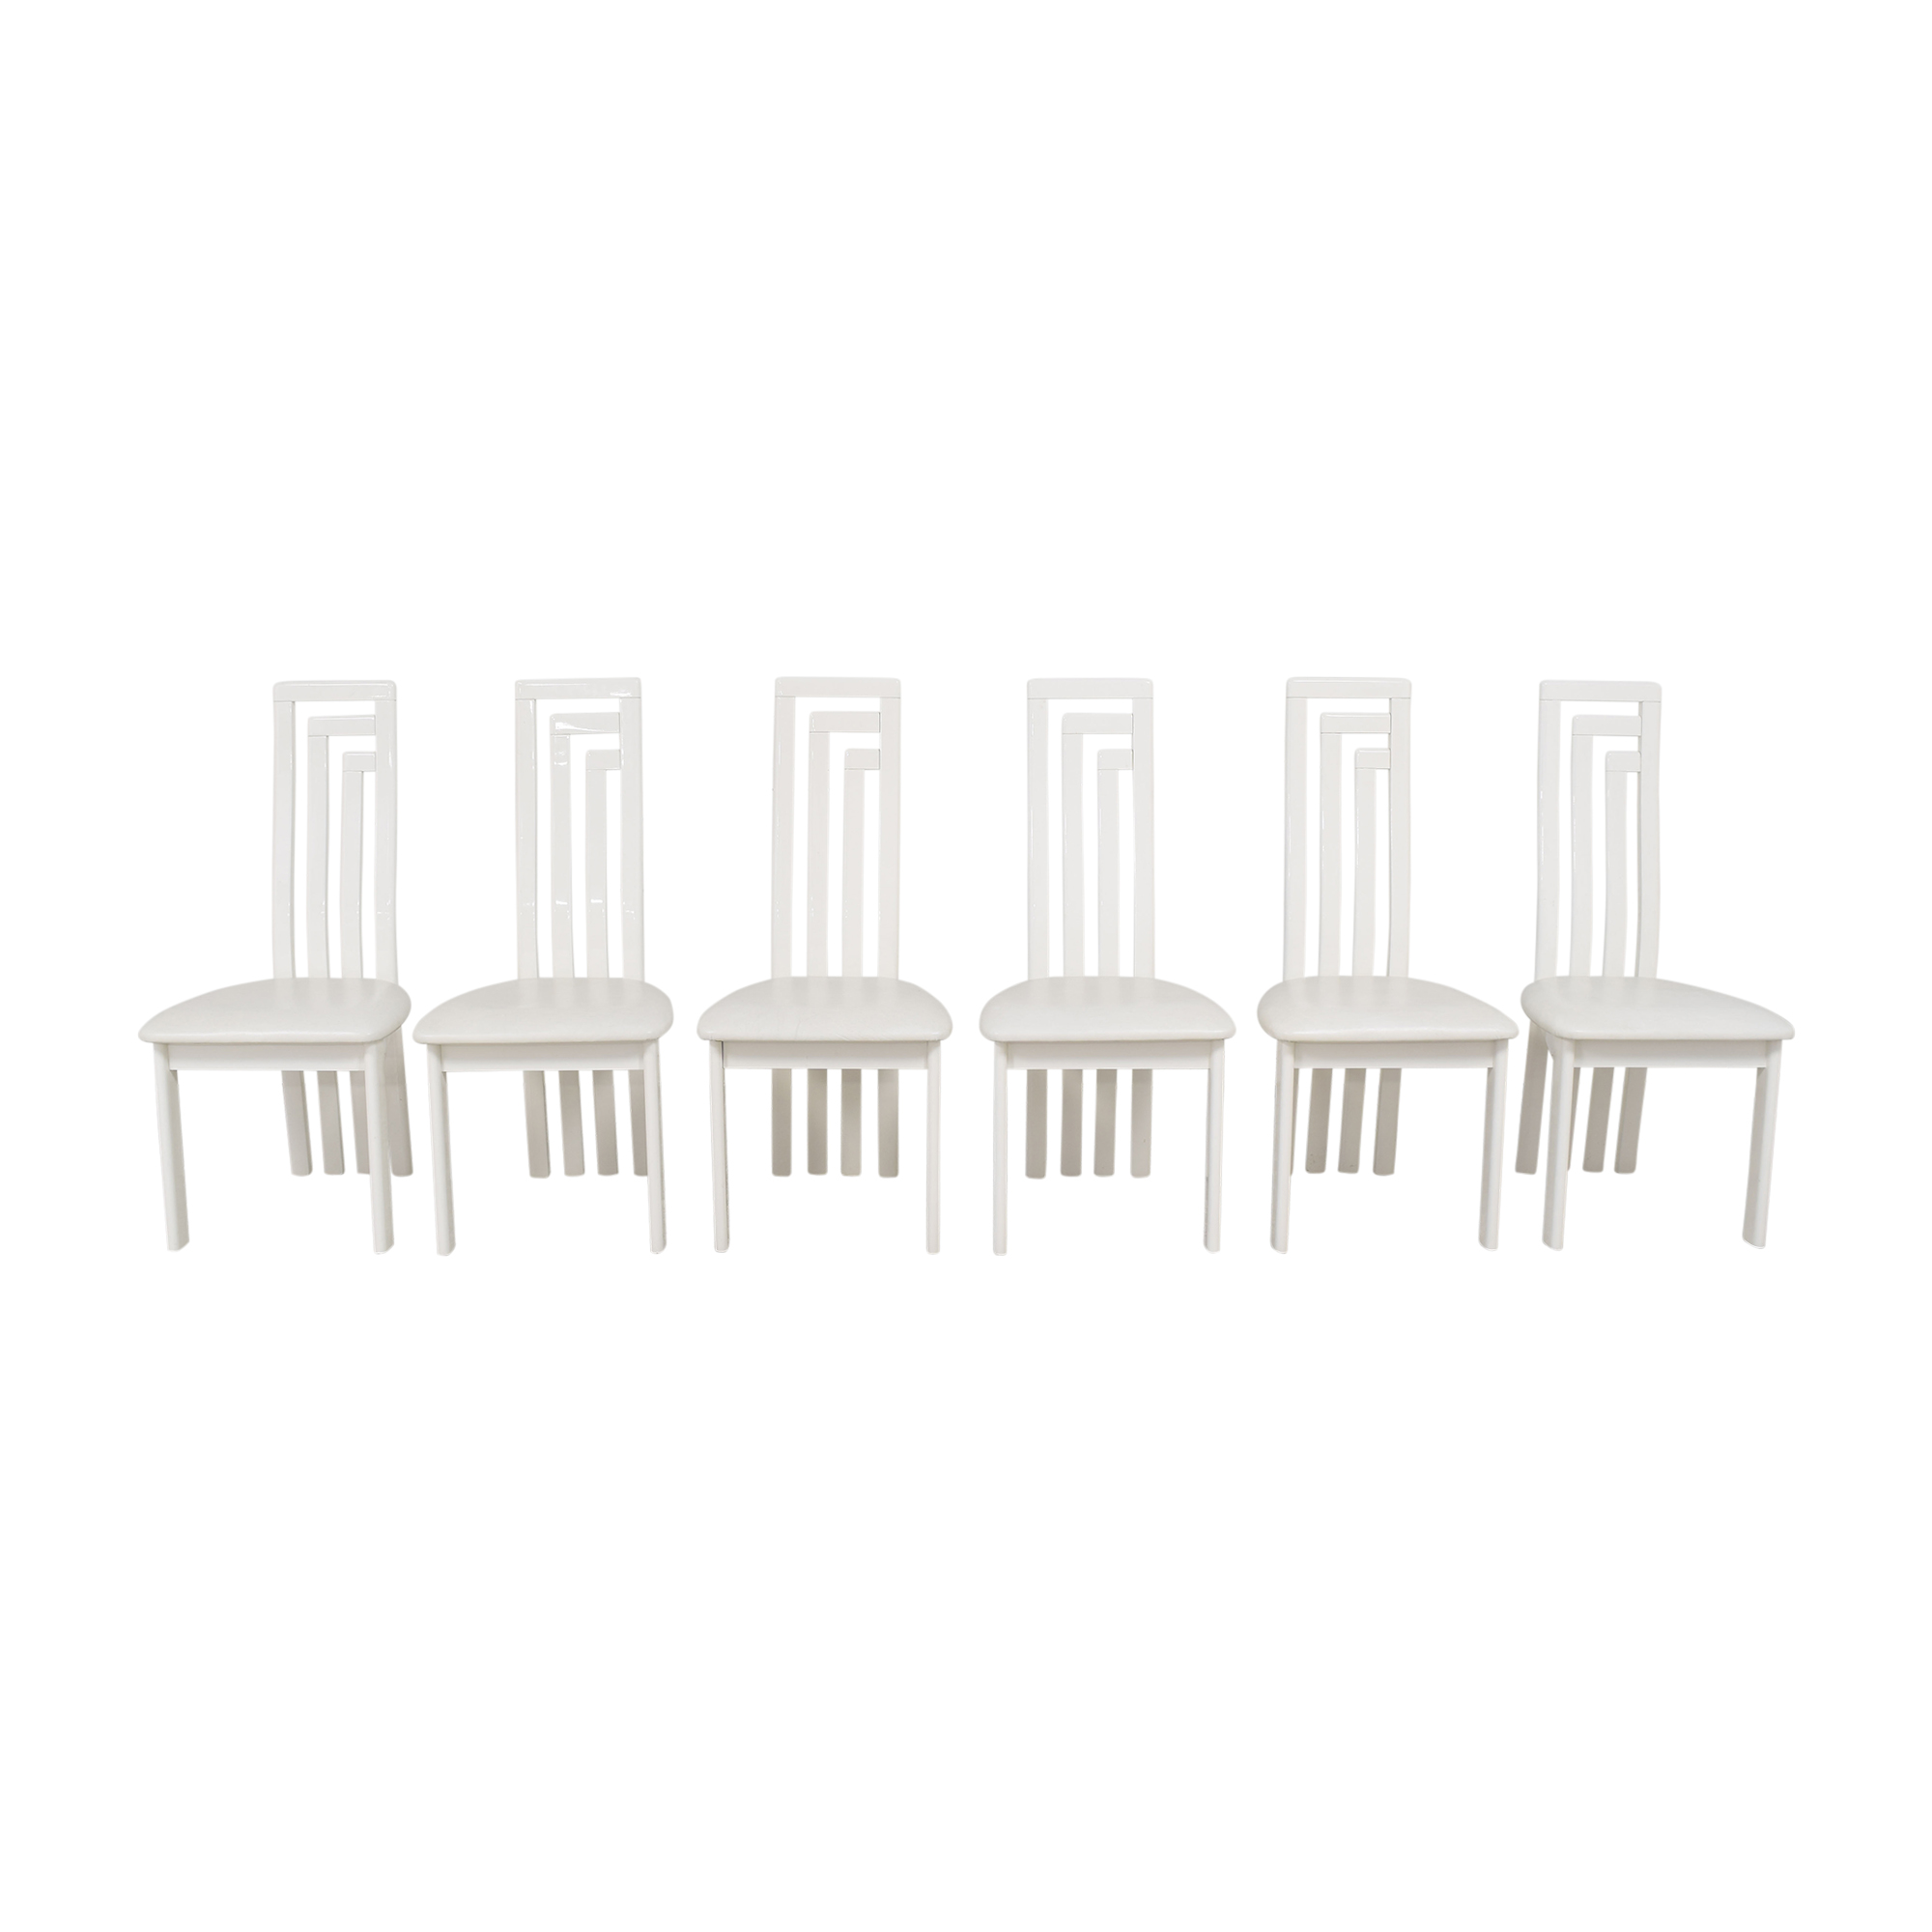 Carrier Furniture Carrier Furniture High Back Dining Chairs Chairs